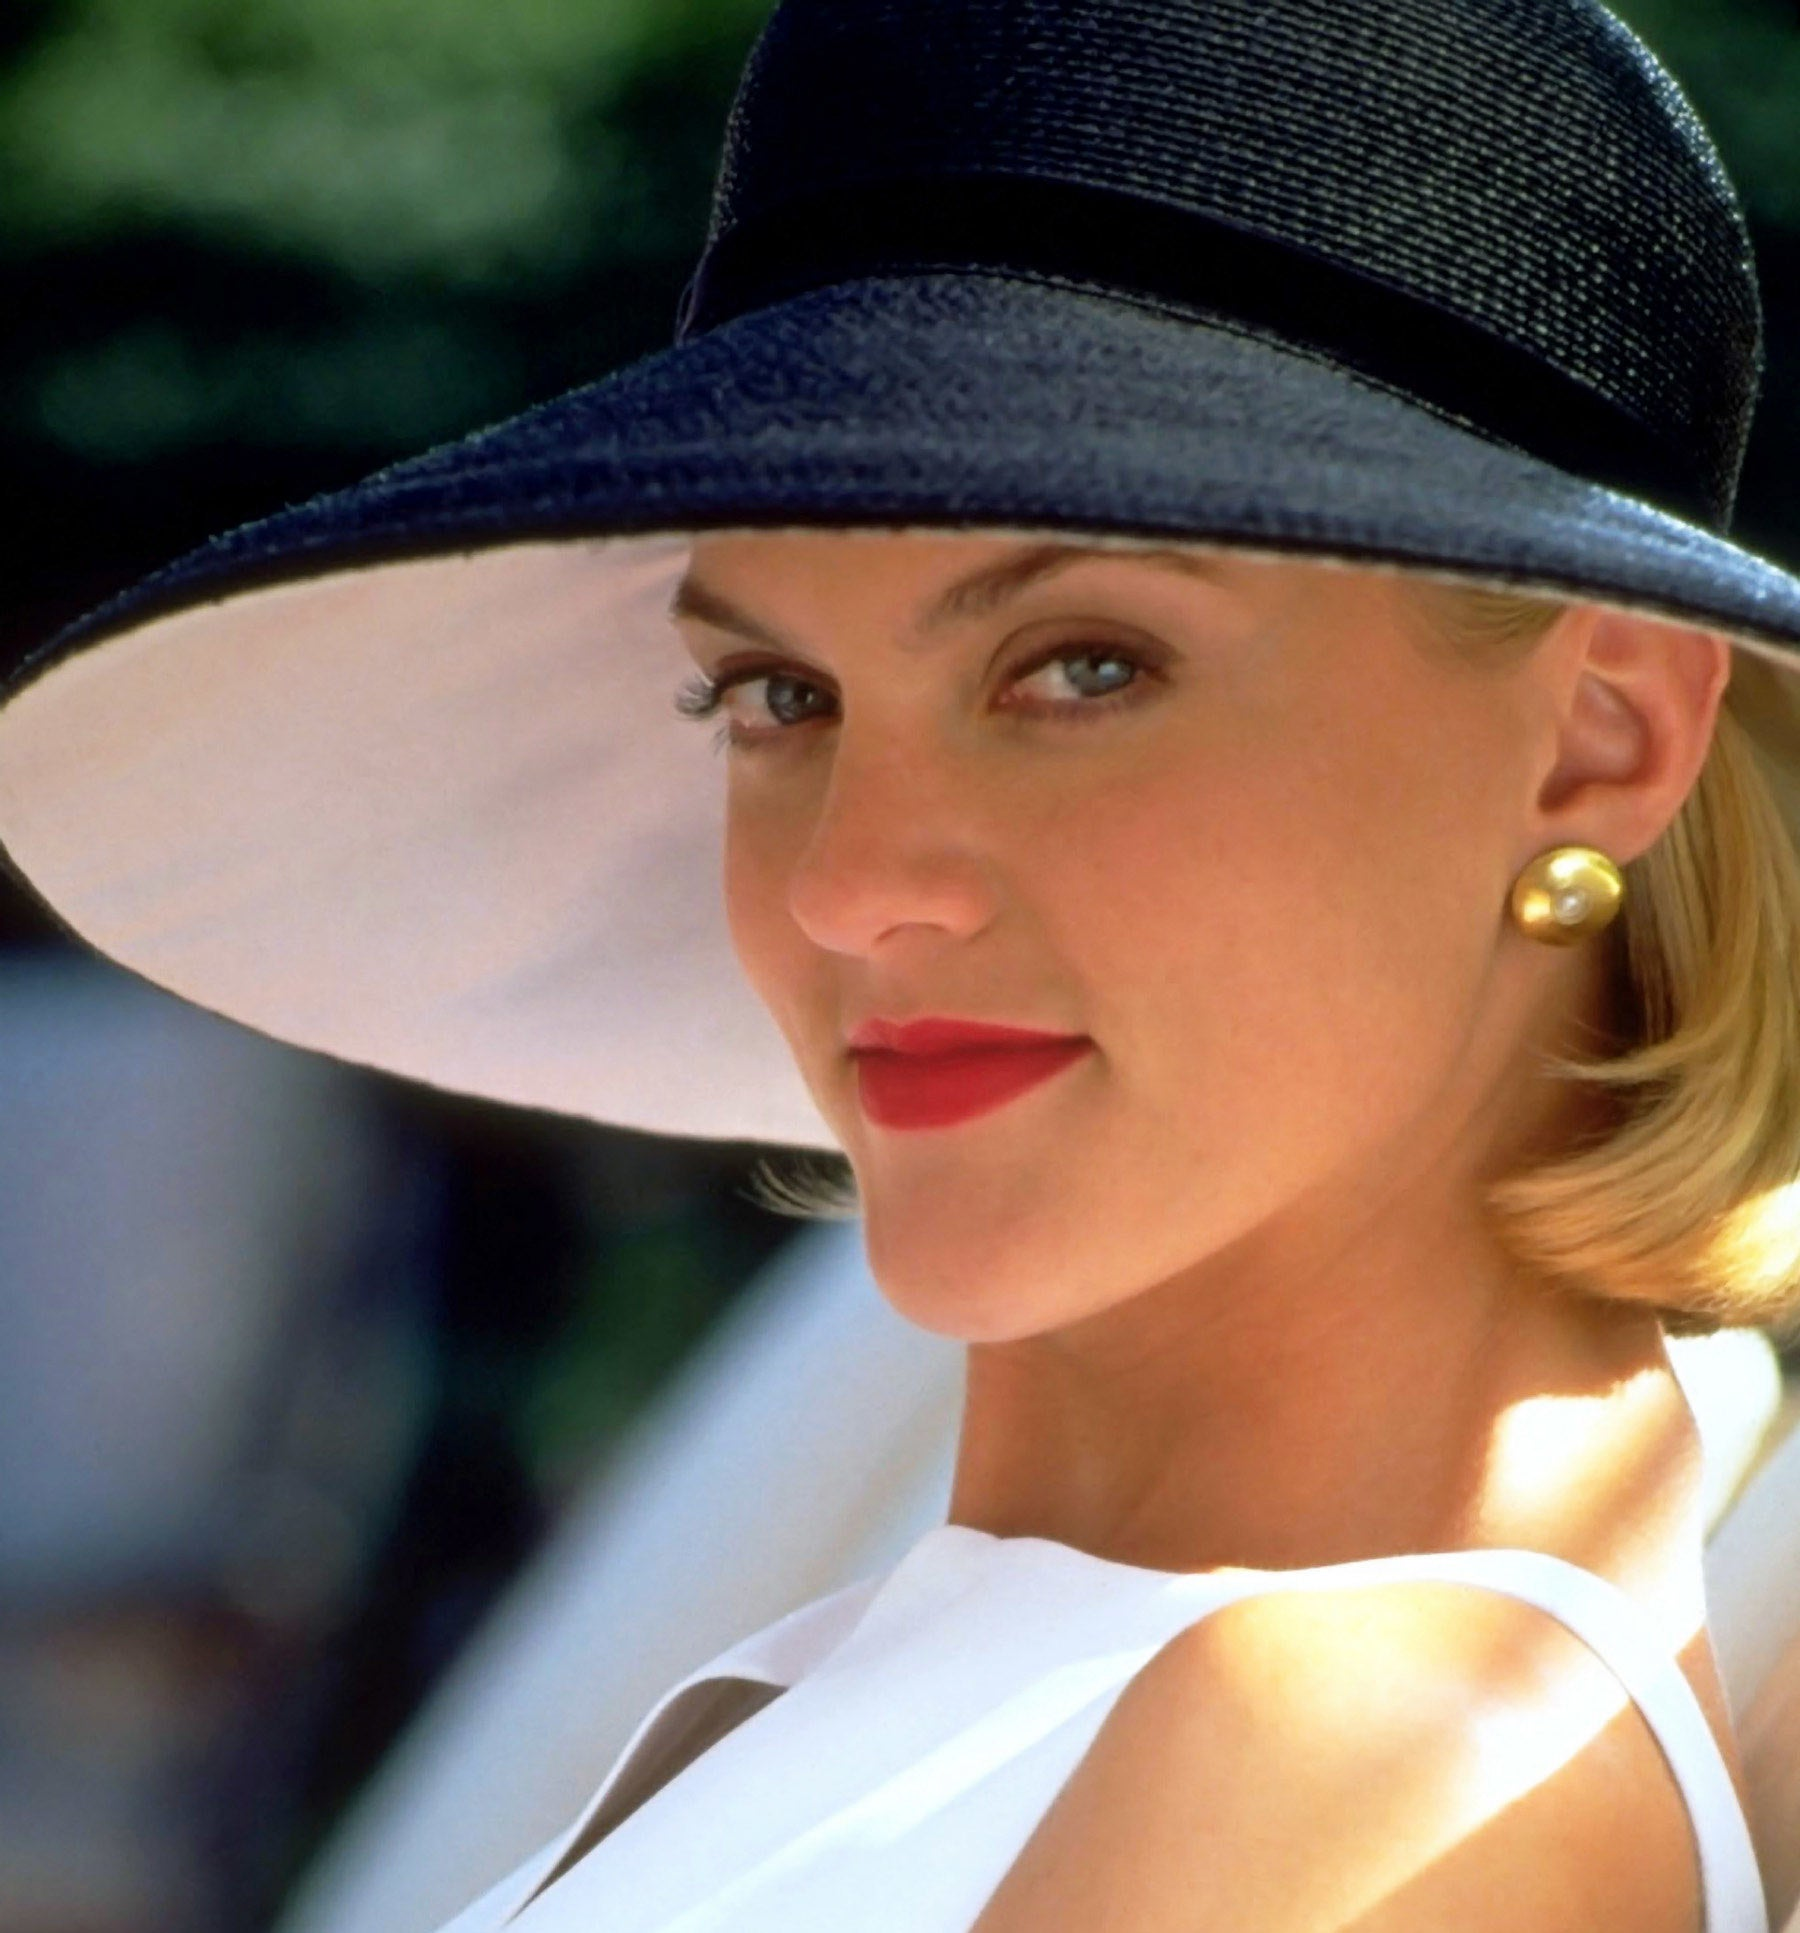 Photo of Meredith Blake from The Parent Trap